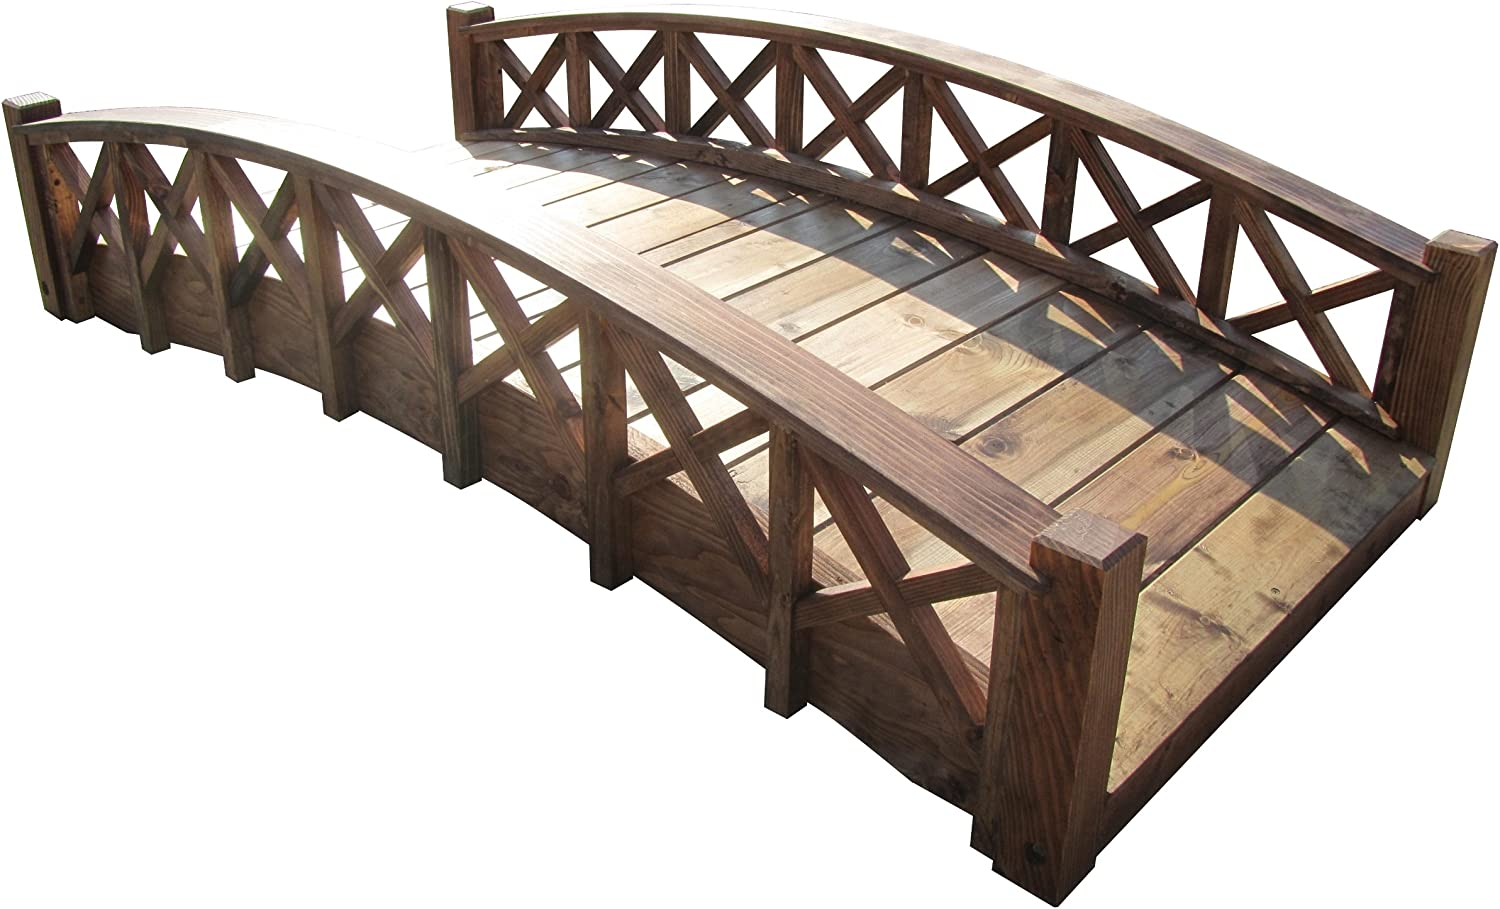 SamsGazebos MB-SB6-T Garden Bridge, 6-Feet, Brown